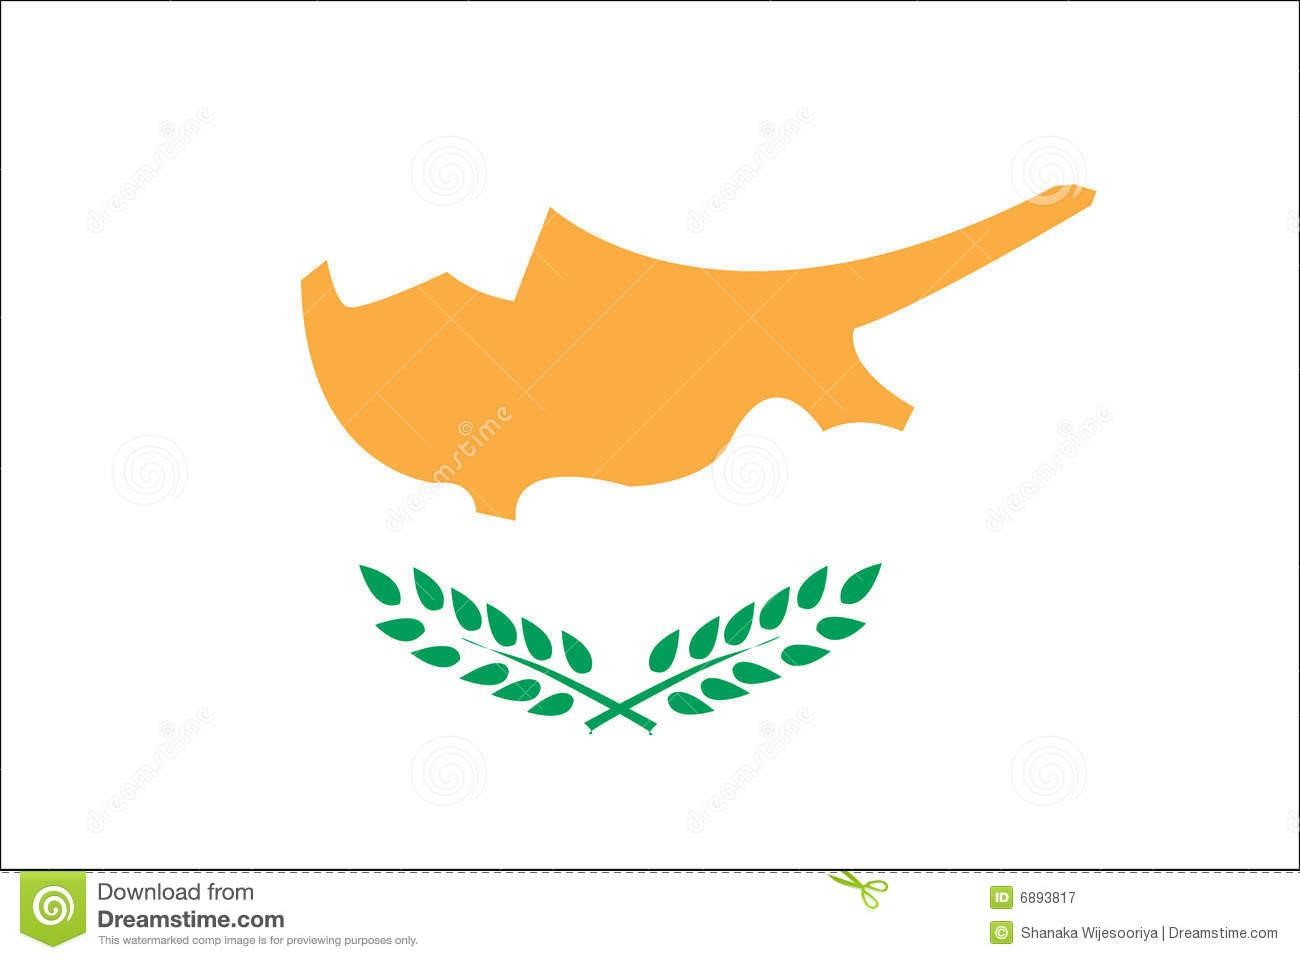 flag-europe-country-cyprus-6893817.jpg